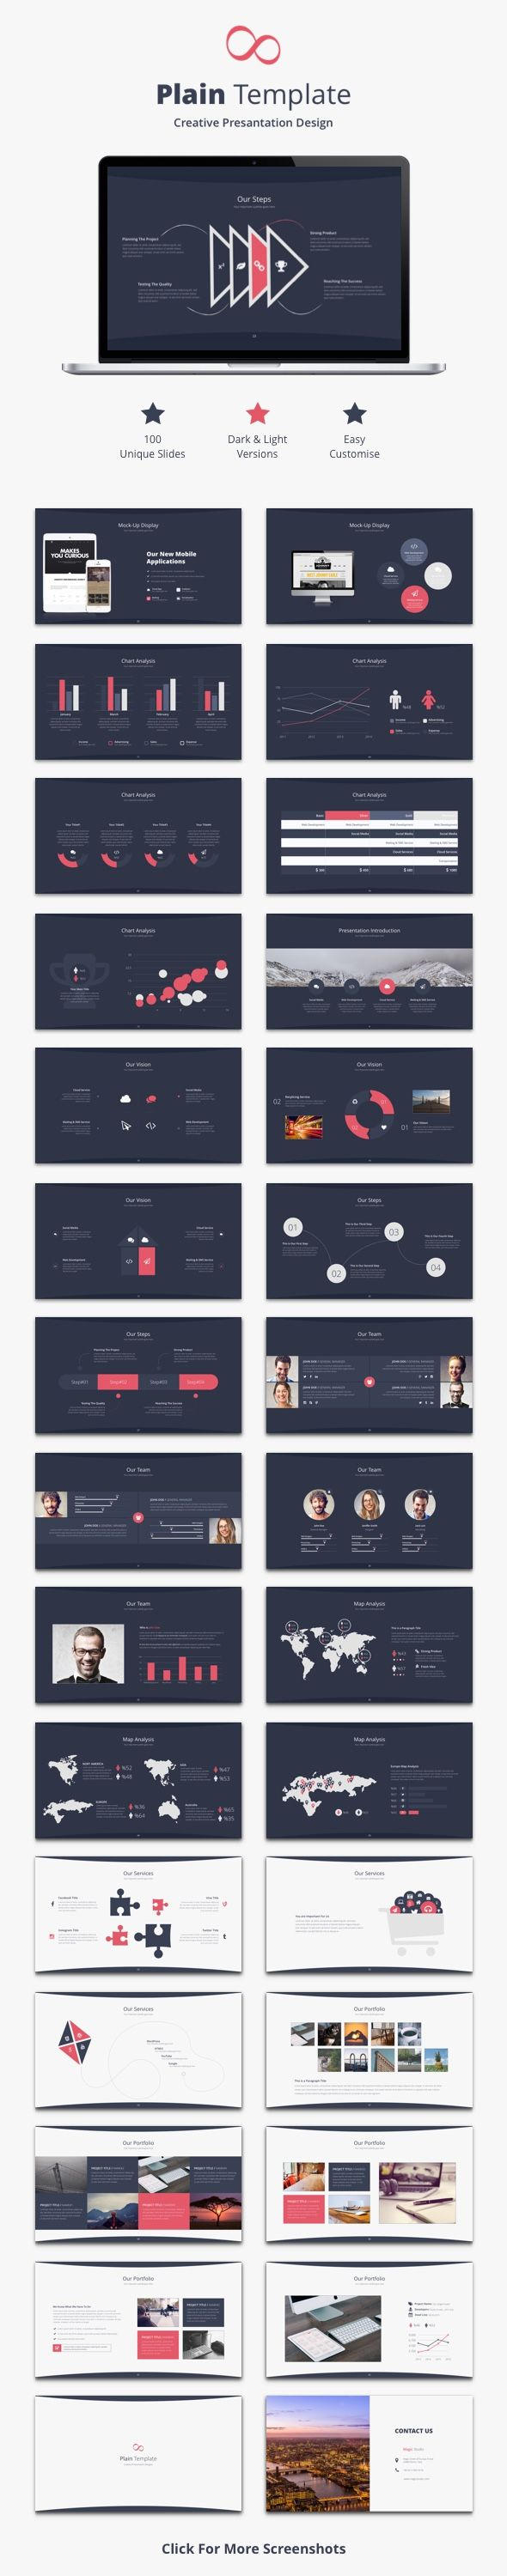 Plain Keynote Template - Creative #Keynote #Templates Download here: https://graphicriver.net/item/plain-keynote-template/19380470?ref=alena994